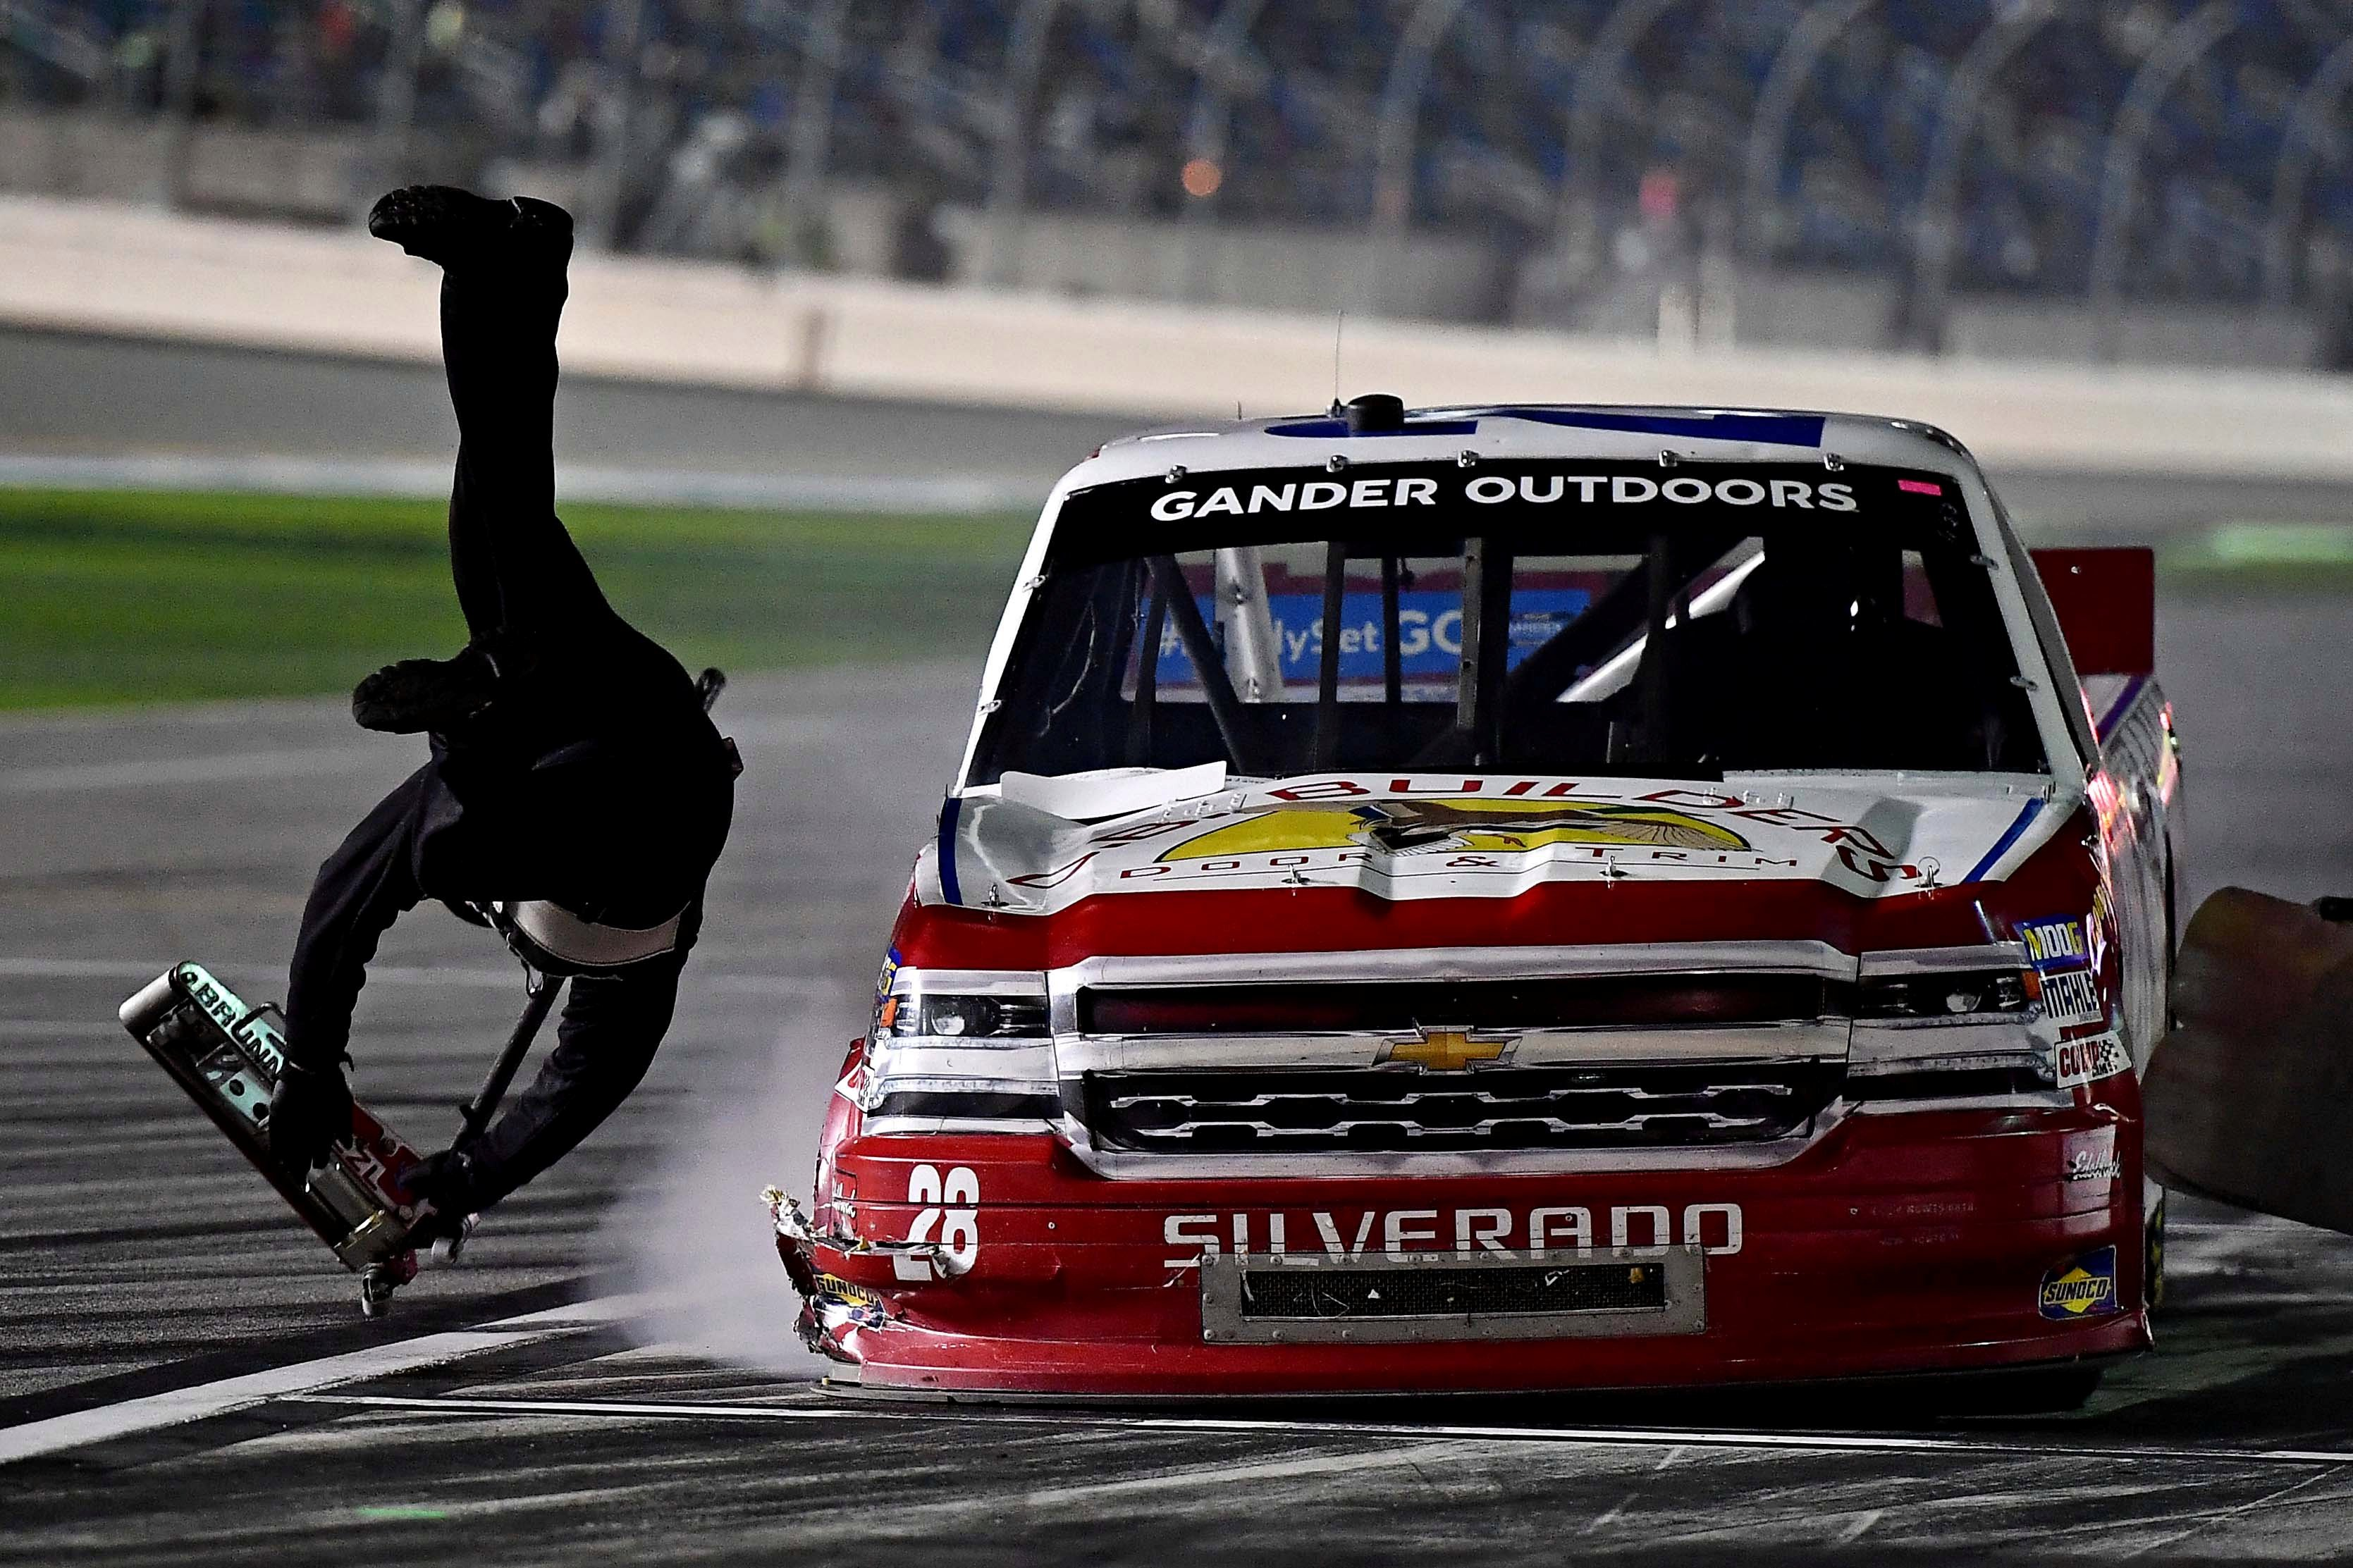 Pit man miraculously escapes serious injury after NASCAR driver crashes into member of his own team and sends – The Sun